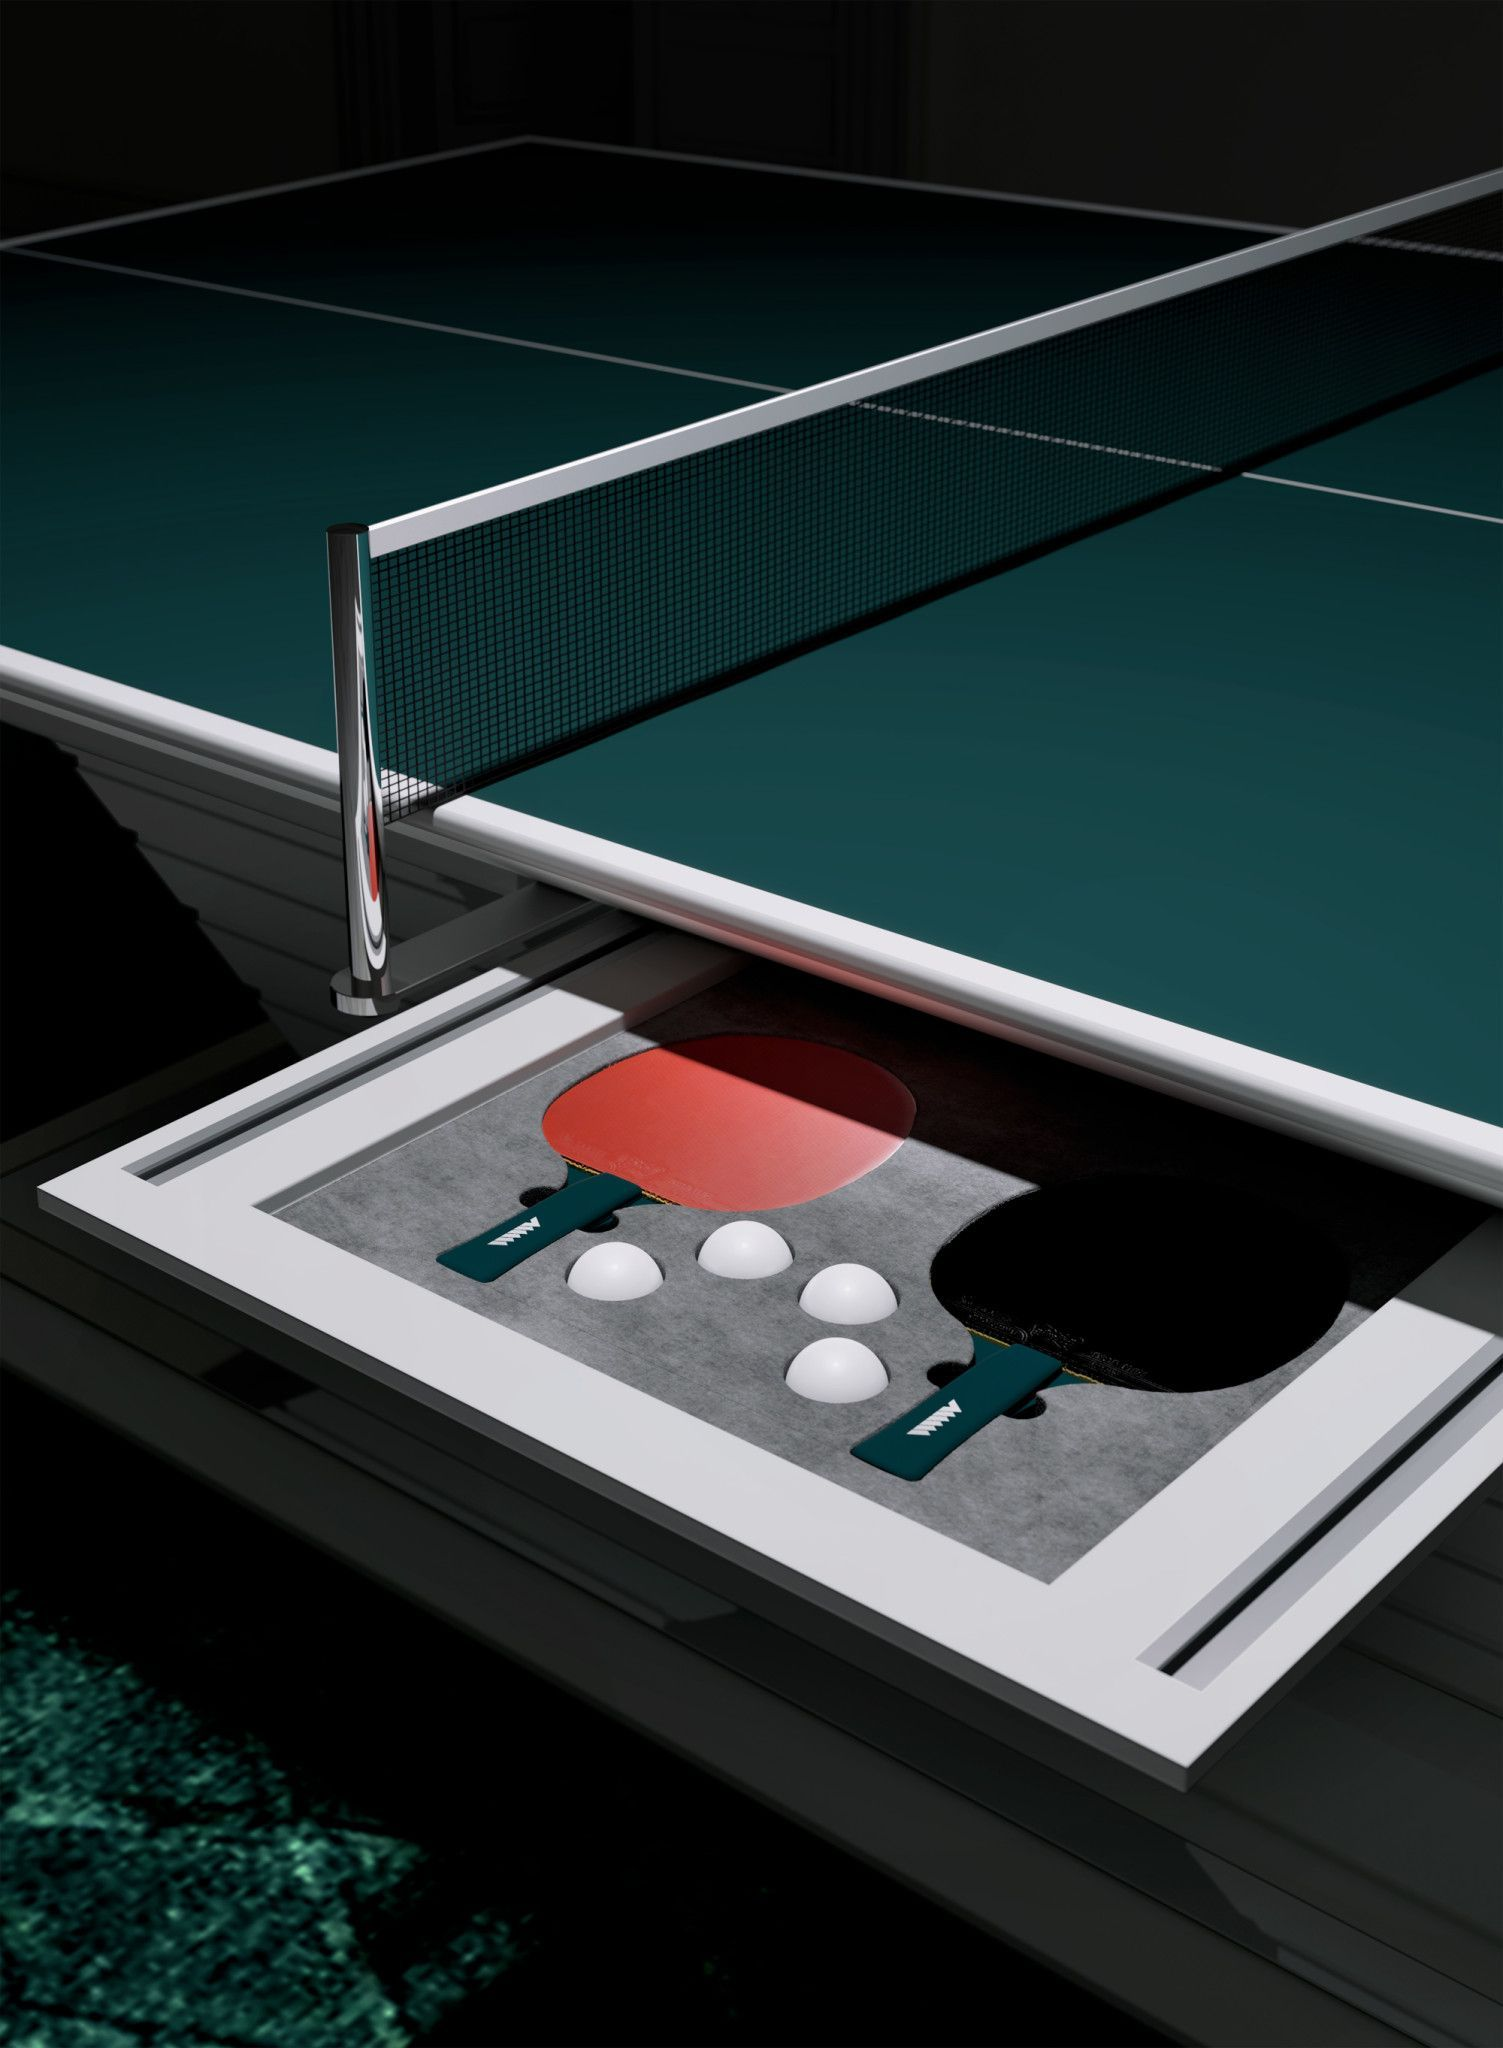 Table Tennis Room Design: Tavolo Da Ping Pong Resort Deals For All Of My Table